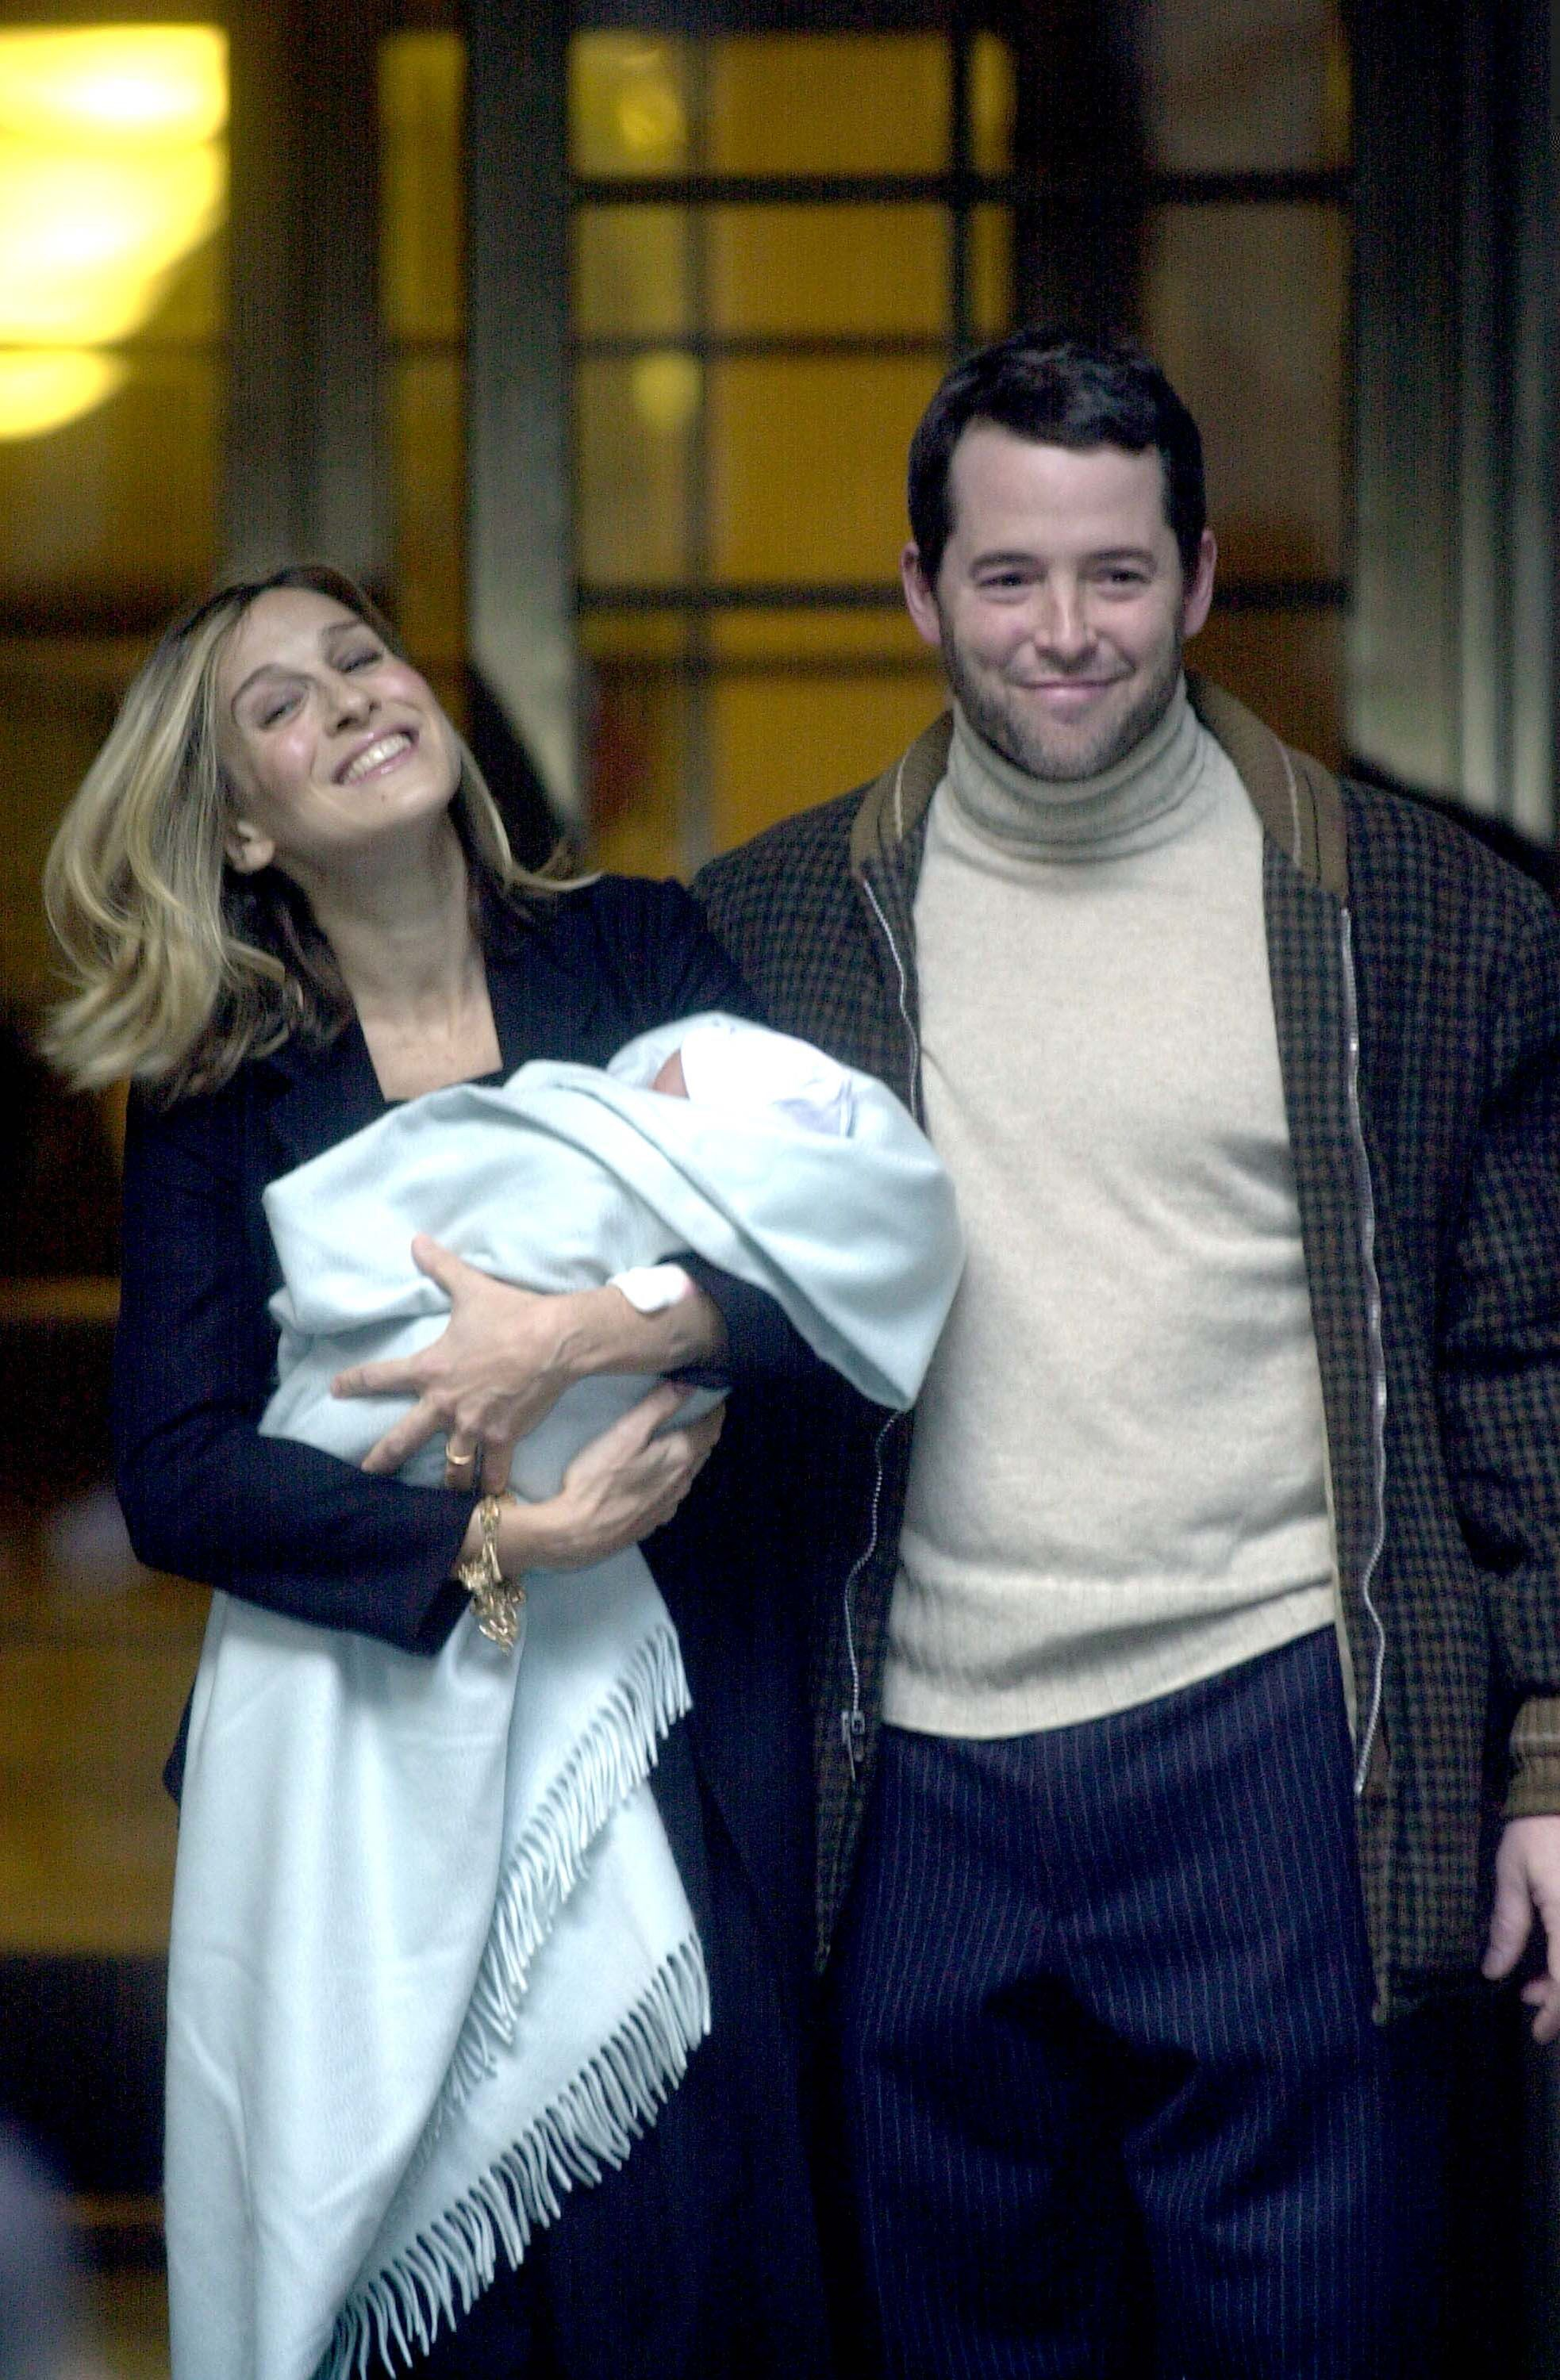 Actress Sarah Jessica Parker (L), her husband actor Matthew Broderick and their newborn son, James Wilke Broderick, leave Lennox Hill Hospital November 1, 2002 in New York City | Photo: Getty Images